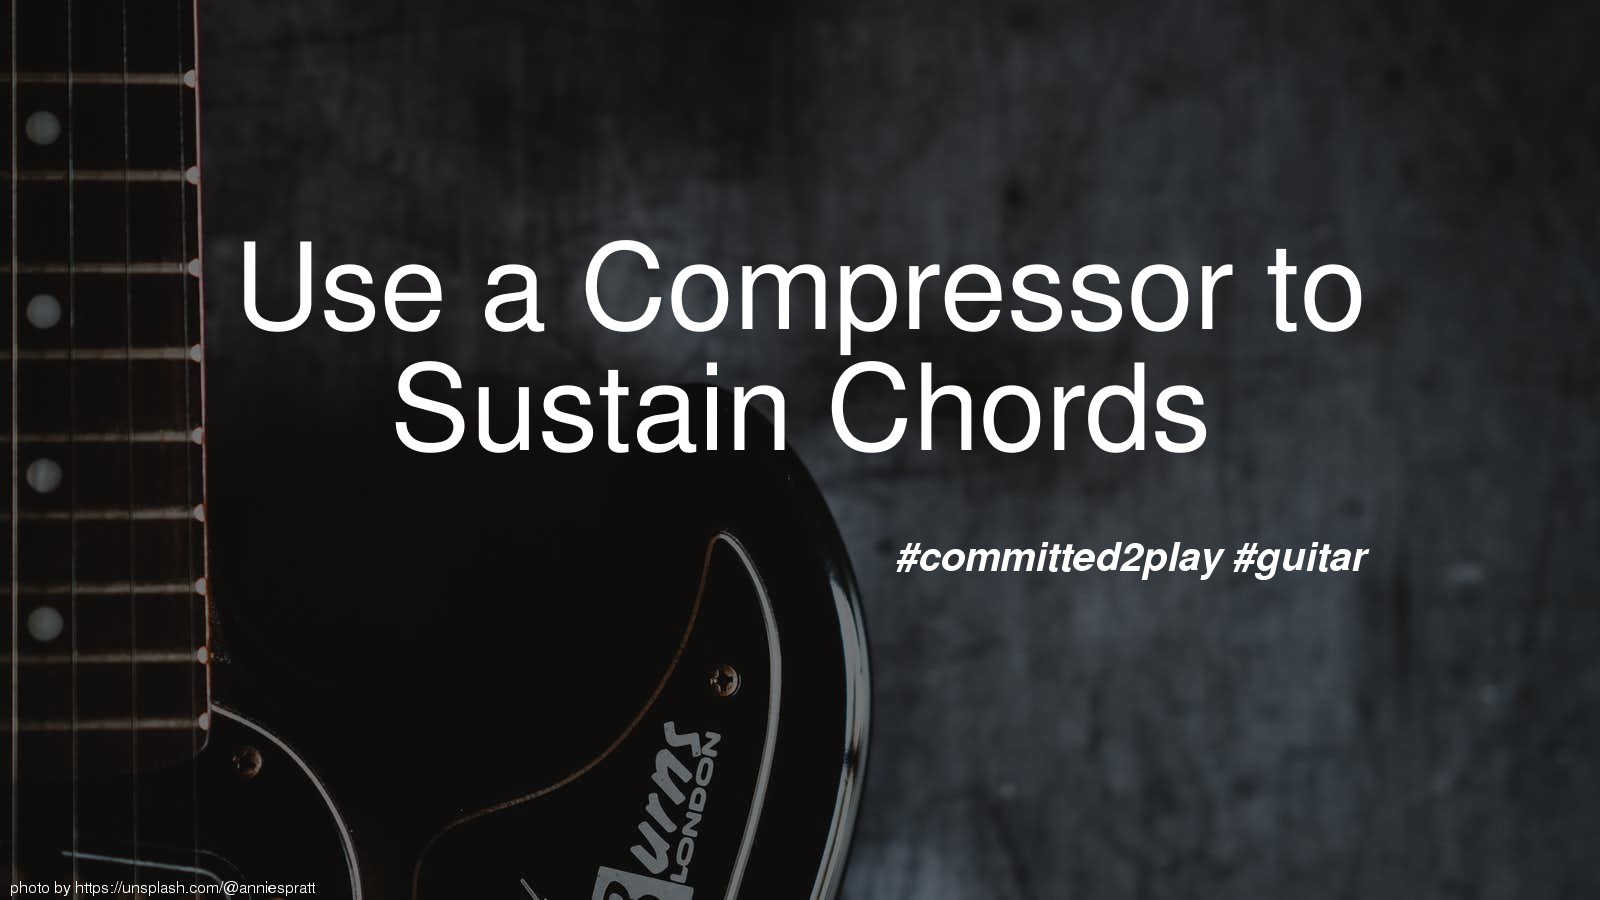 Use a Compressor to Sustain Chords